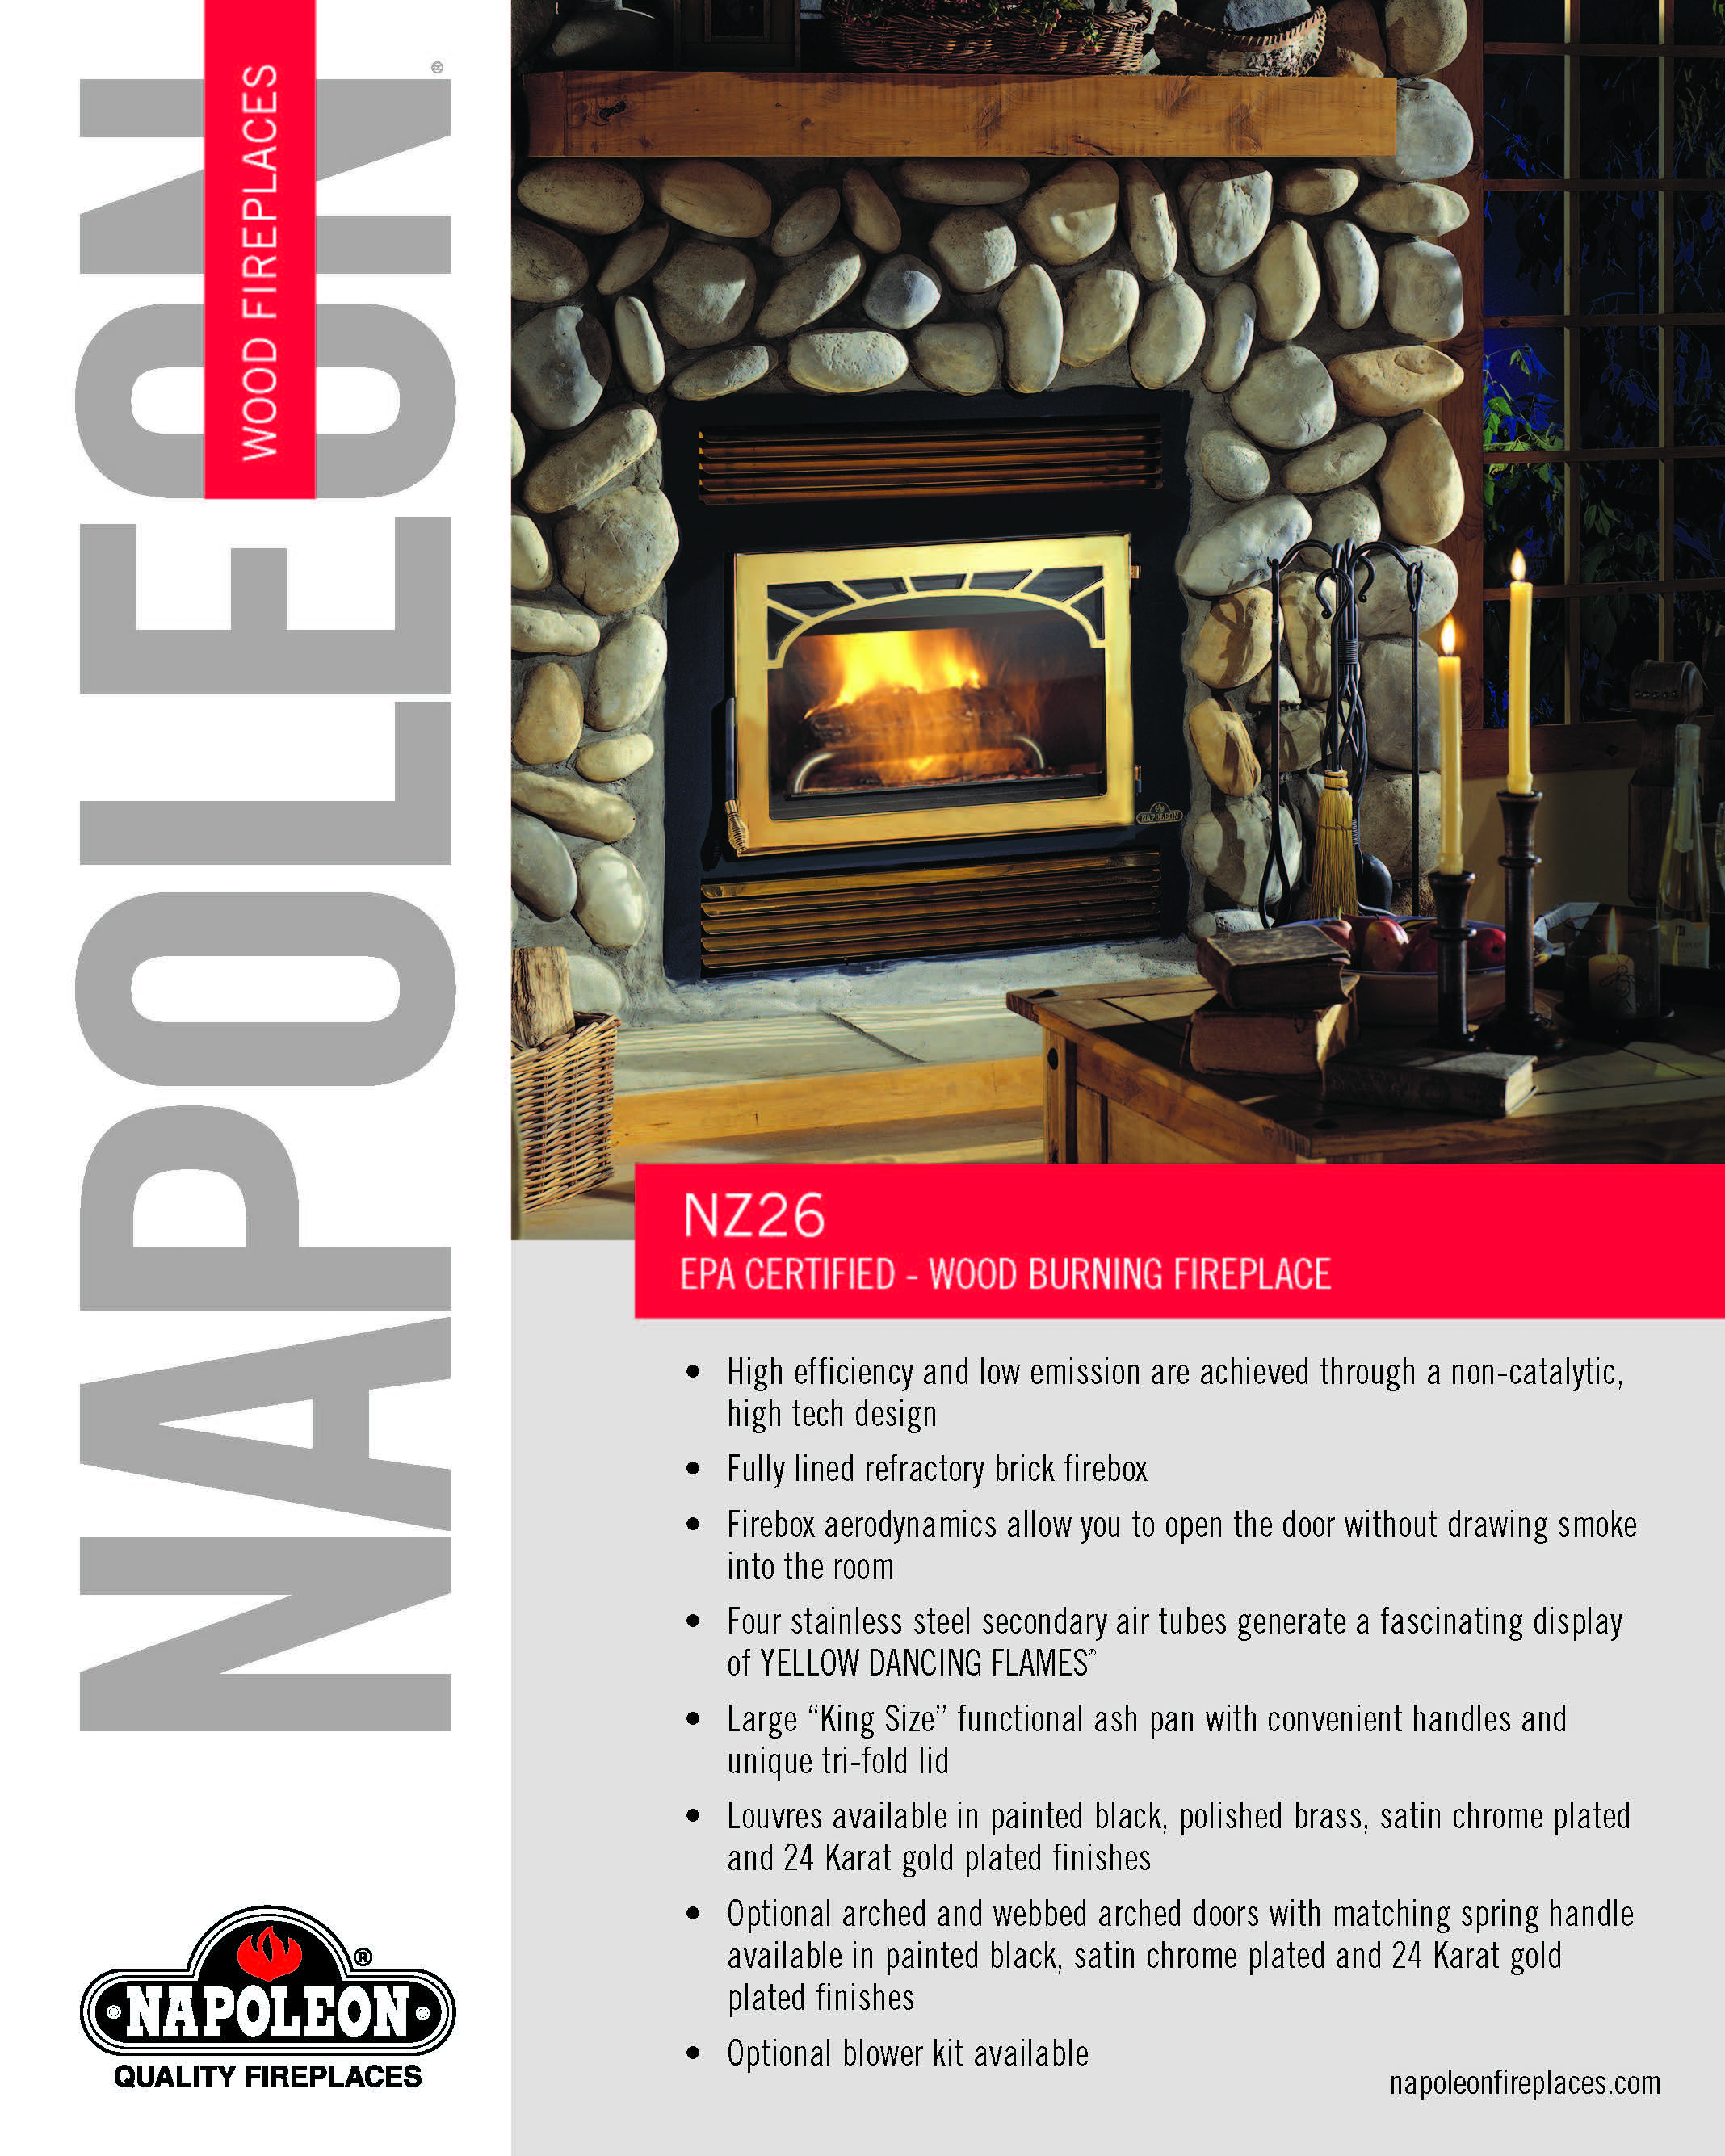 wood stove or pellet stove Archives - Harding the Fireplace